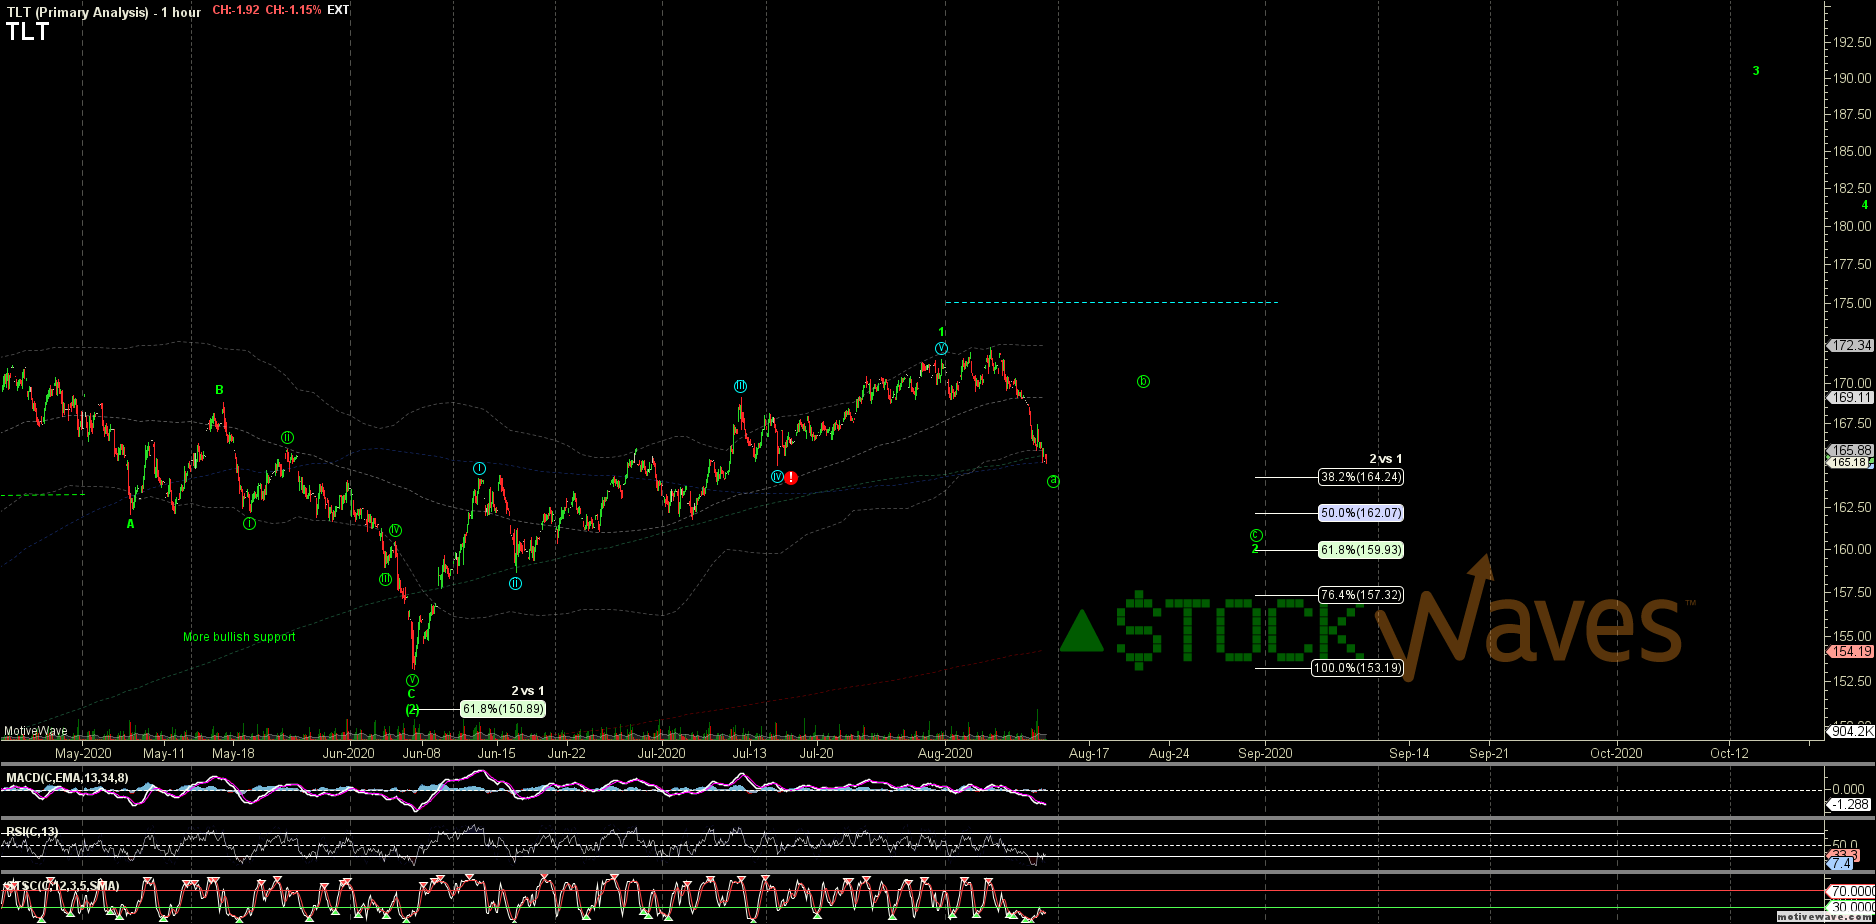 TLT - Primary Analysis - Aug-12 0831 AM (1 hour)